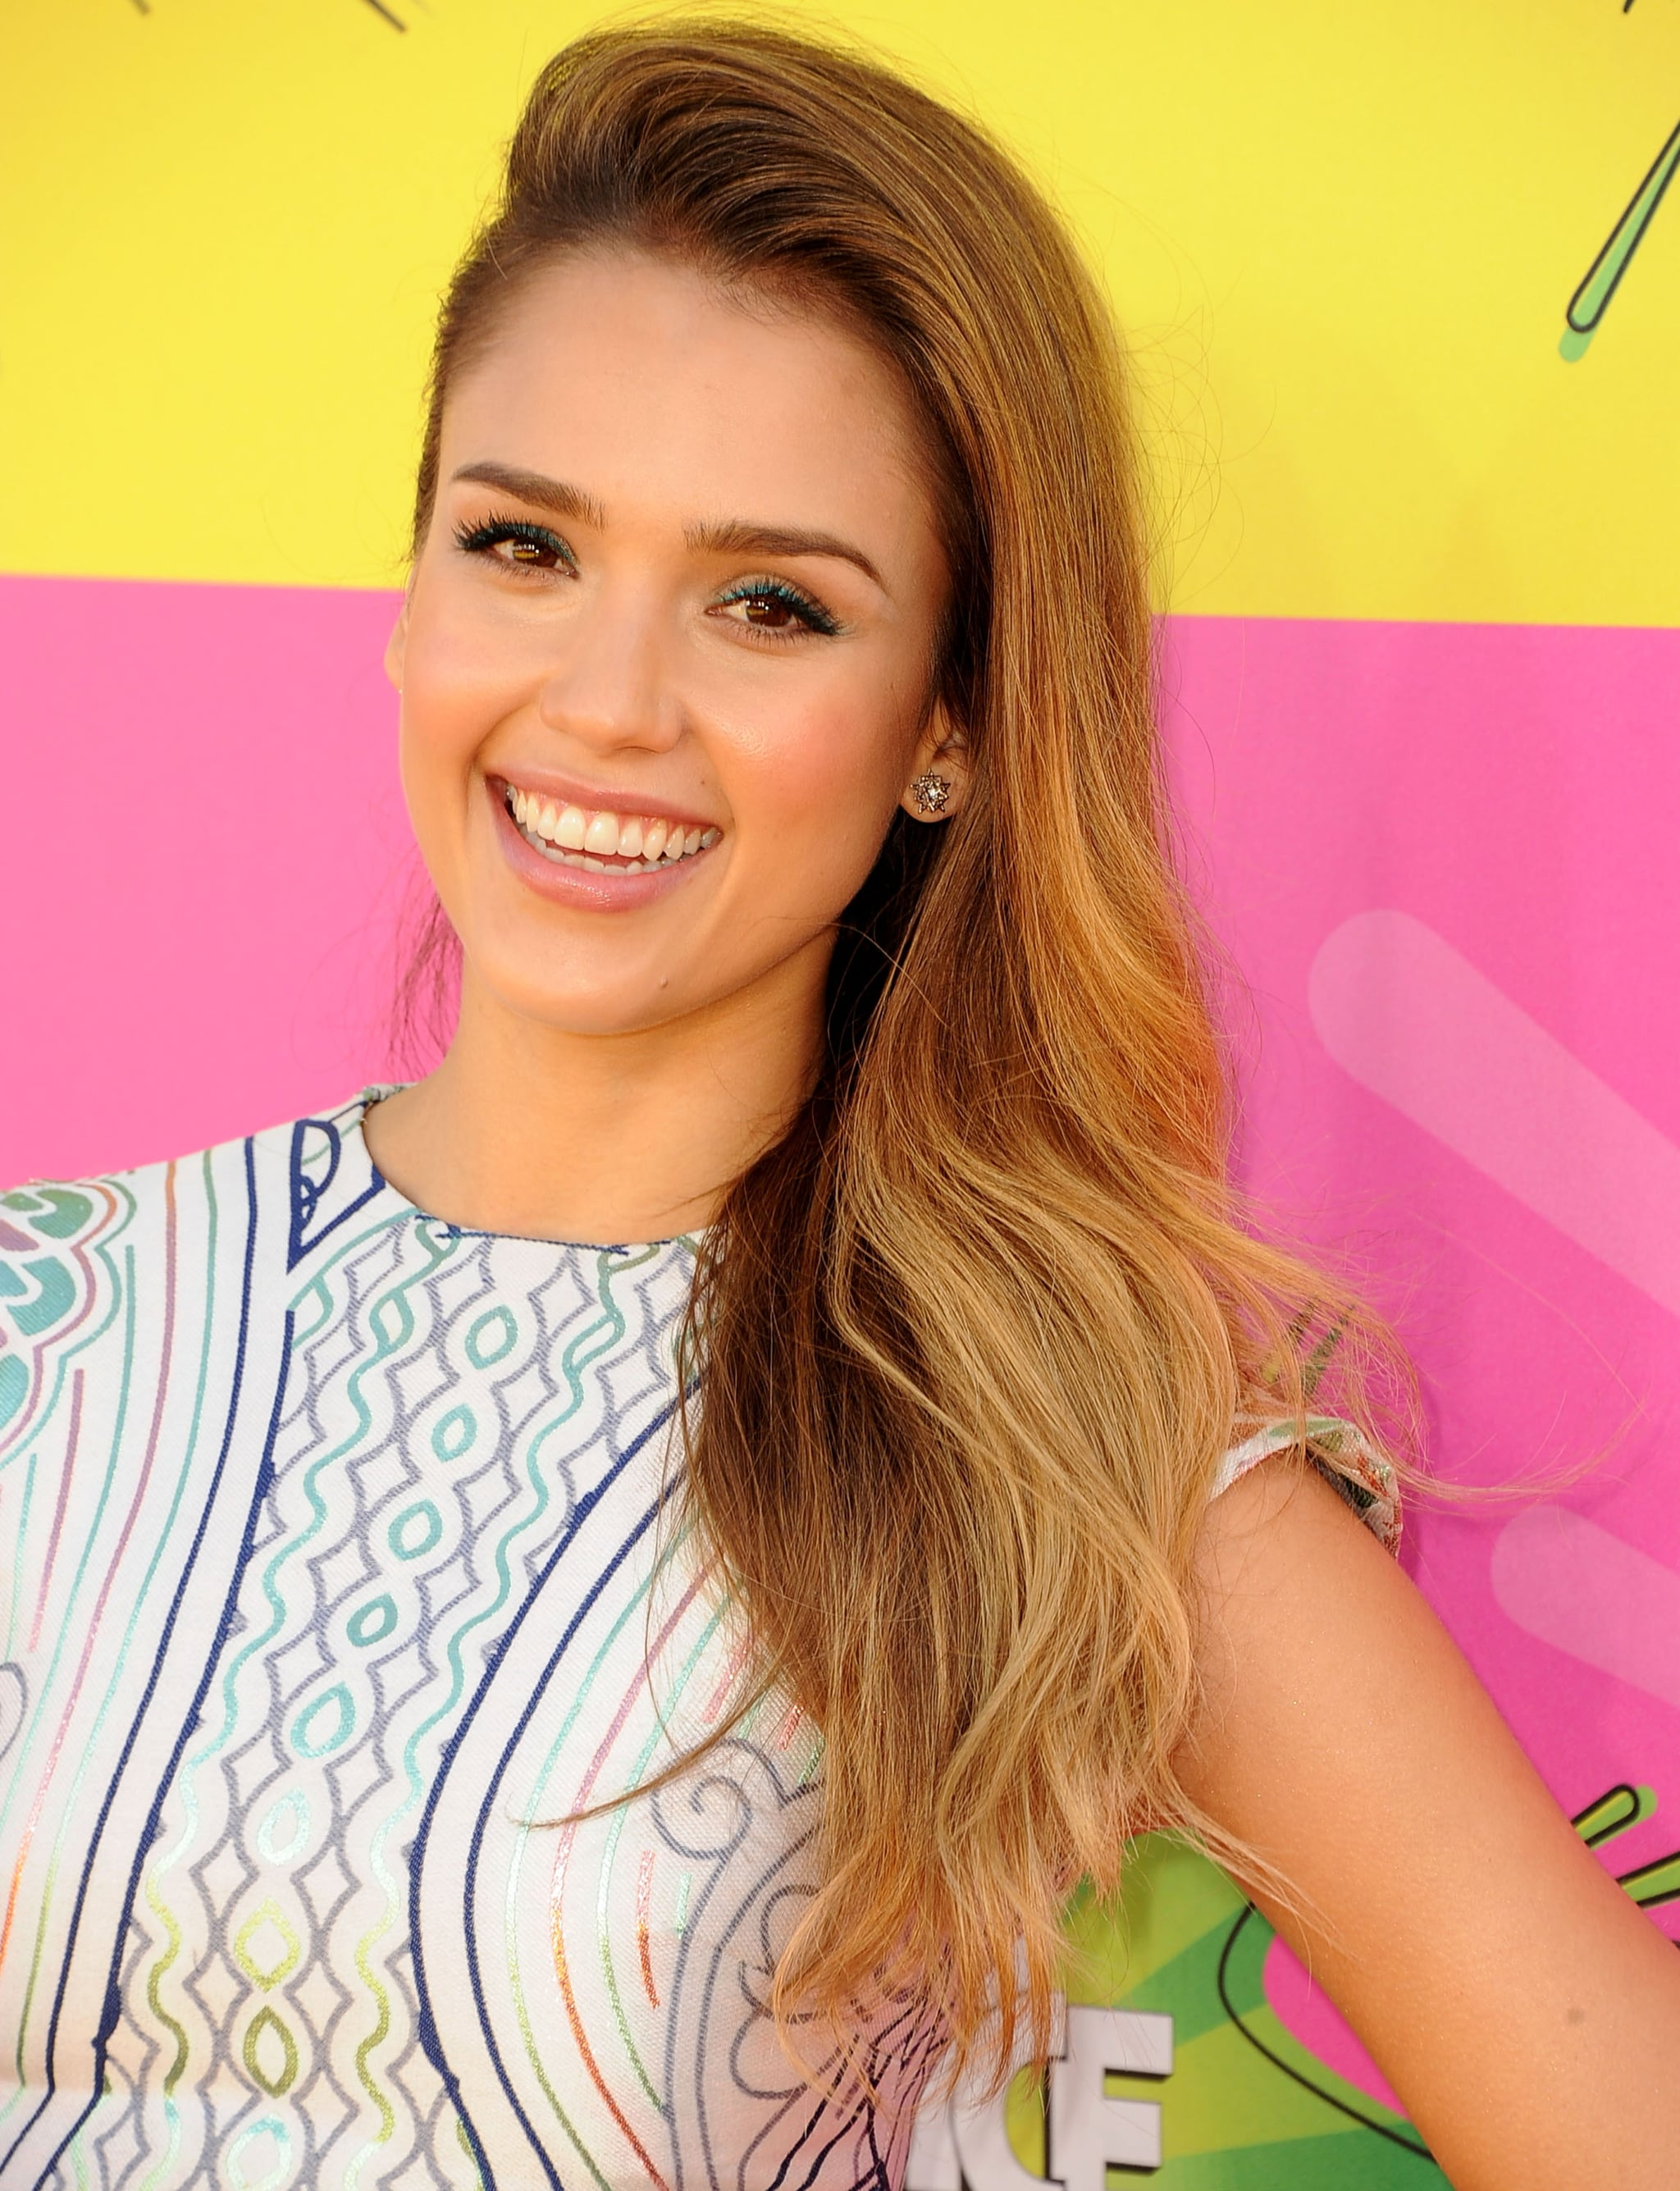 At the Kids' Choice Awards, Jessica Alba slicked back her hair on one side for a sleek over-the-shoulder look.